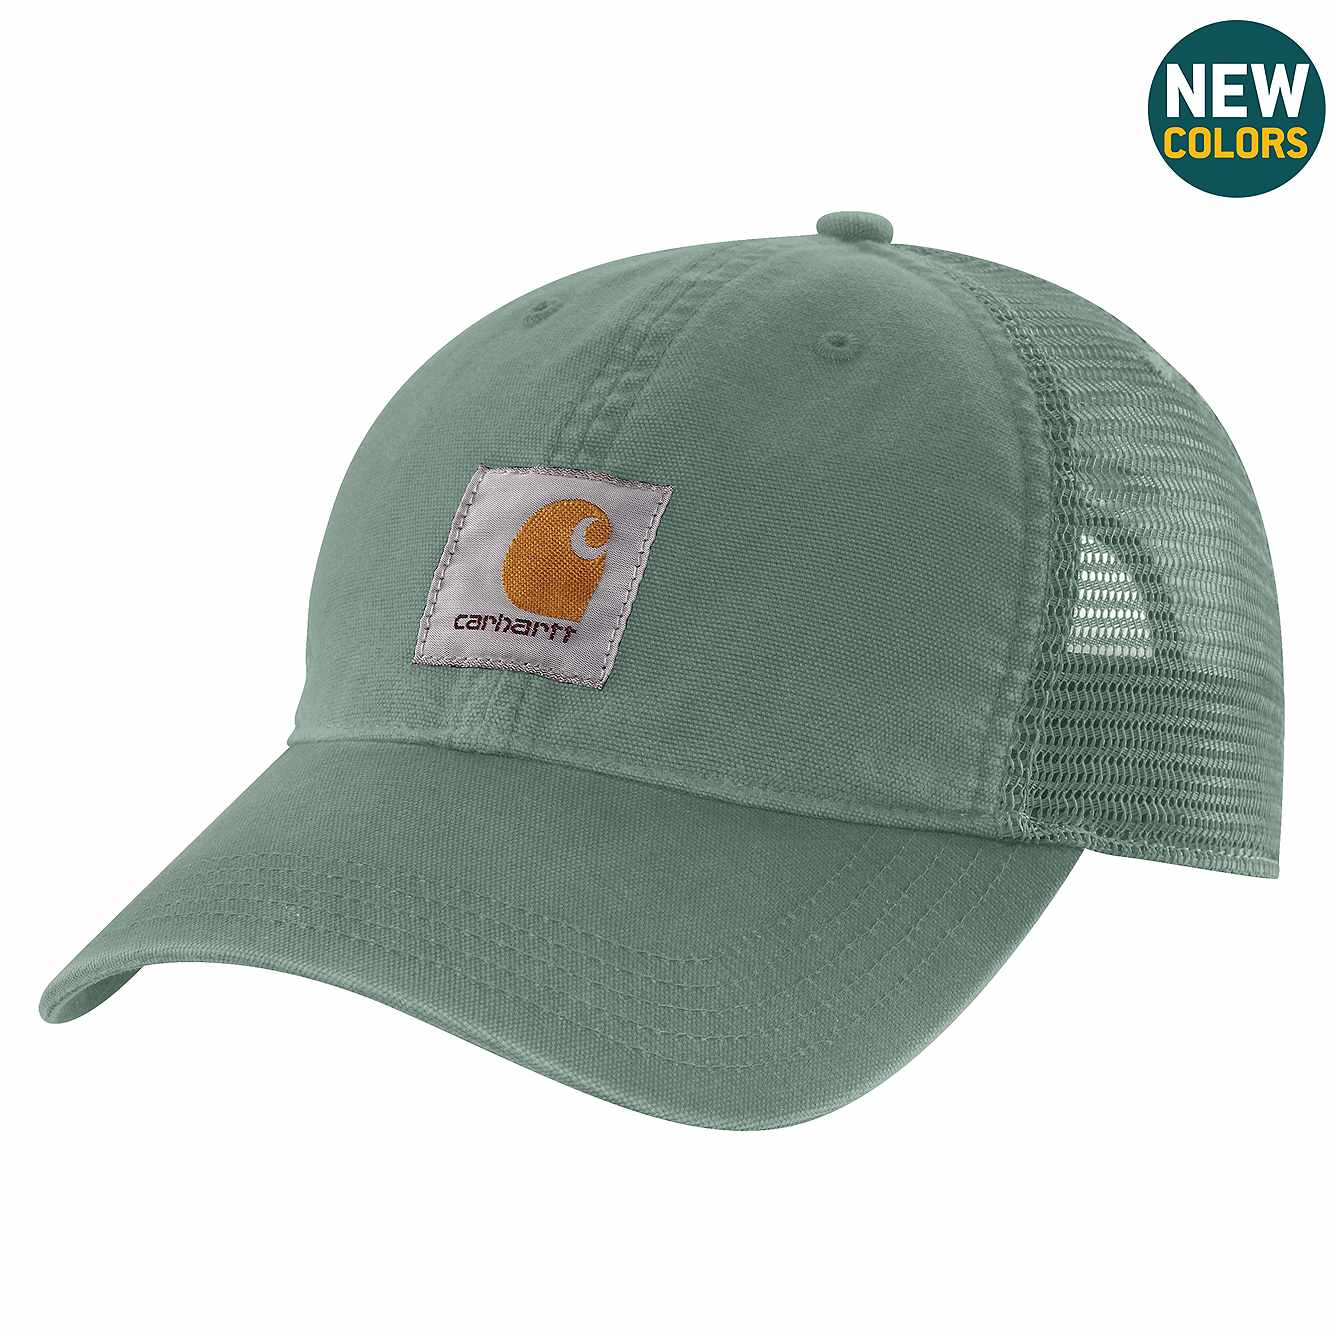 Picture of Buffalo Cap in Leaf Green